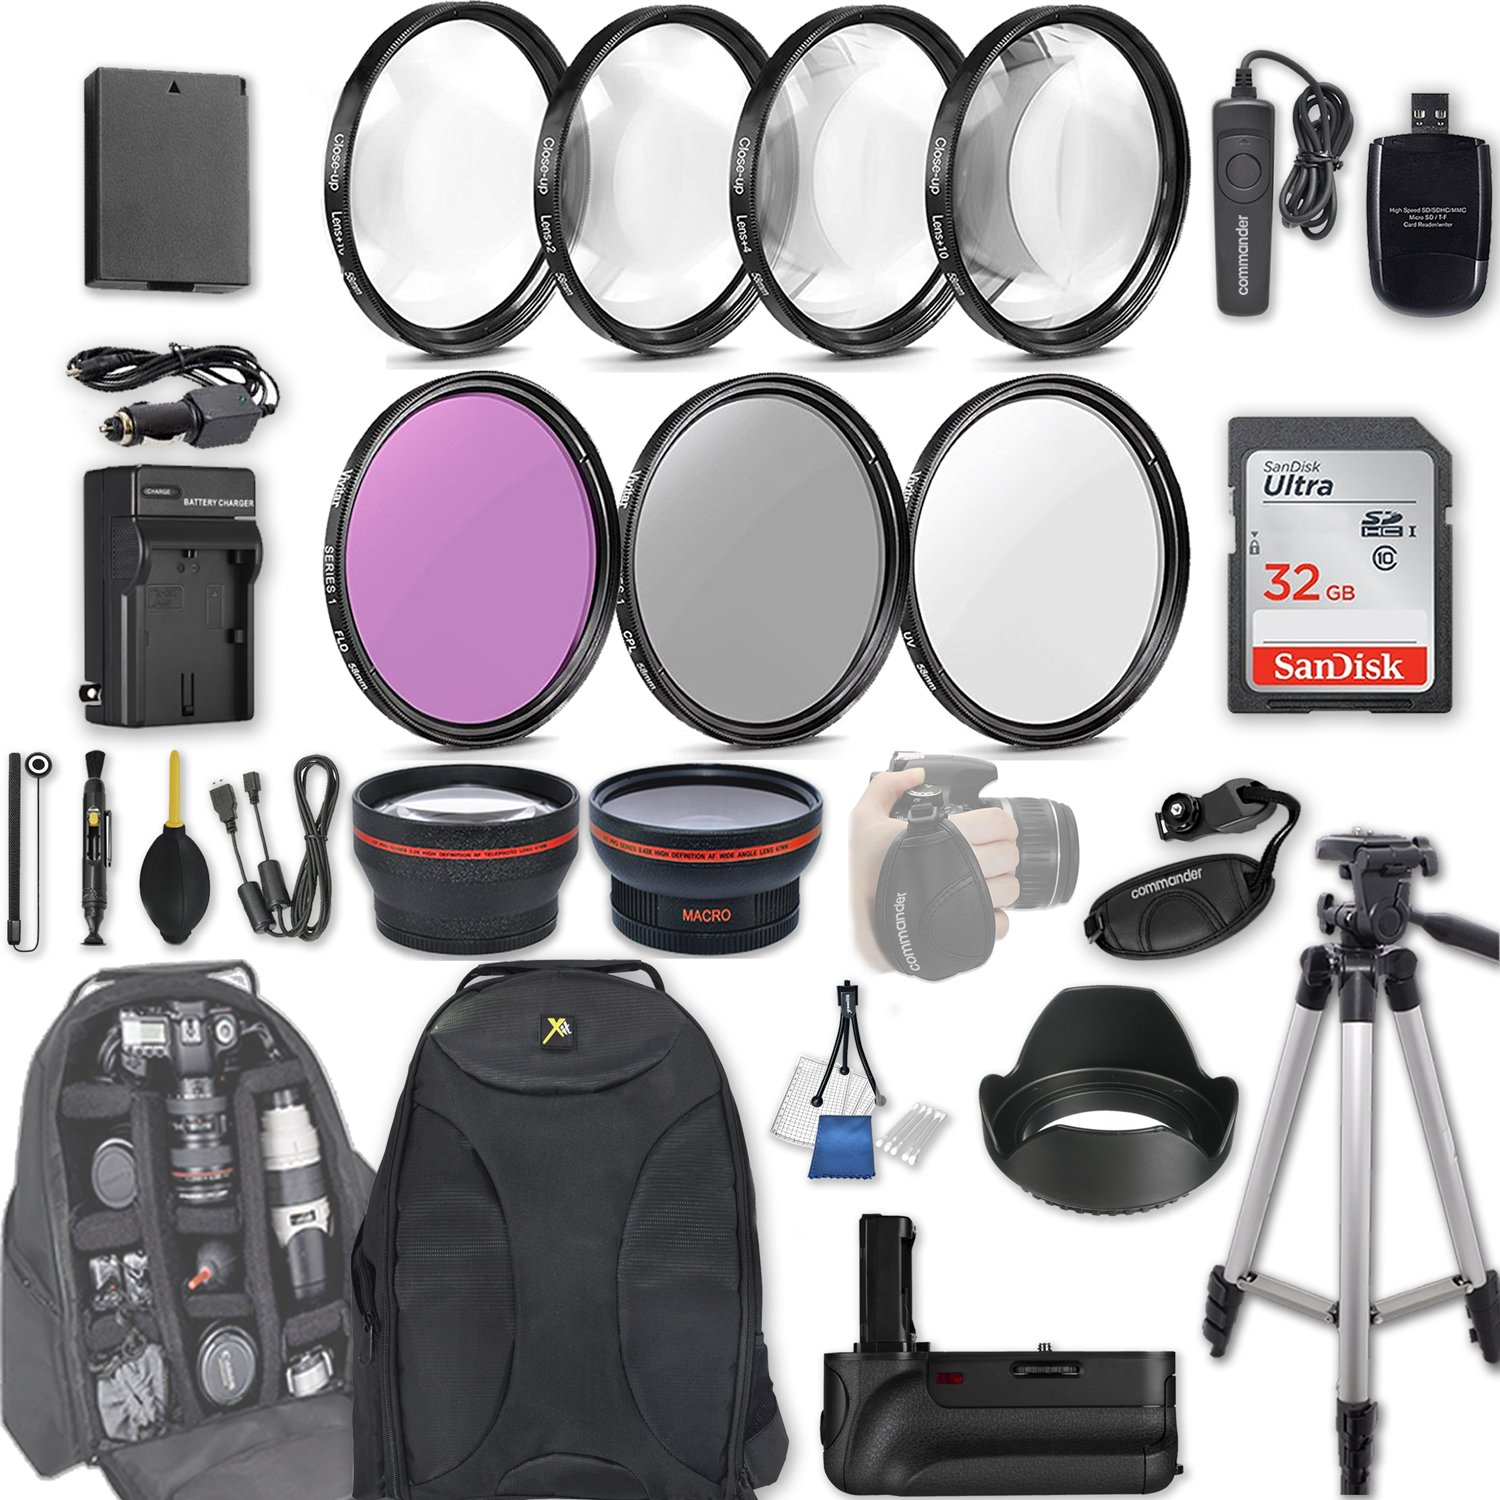 58mm 28 Pc Accessory Kit for Canon EOS Rebel T6, T5, T3, 1300D, 1200D, 1100D DSLRs with 0.43x Wide Angle Lens, 2.2x Telephoto Lens, Battery Grip, 32GB SD, Filter & Macro Kits, Backpack Case, and More by Canon